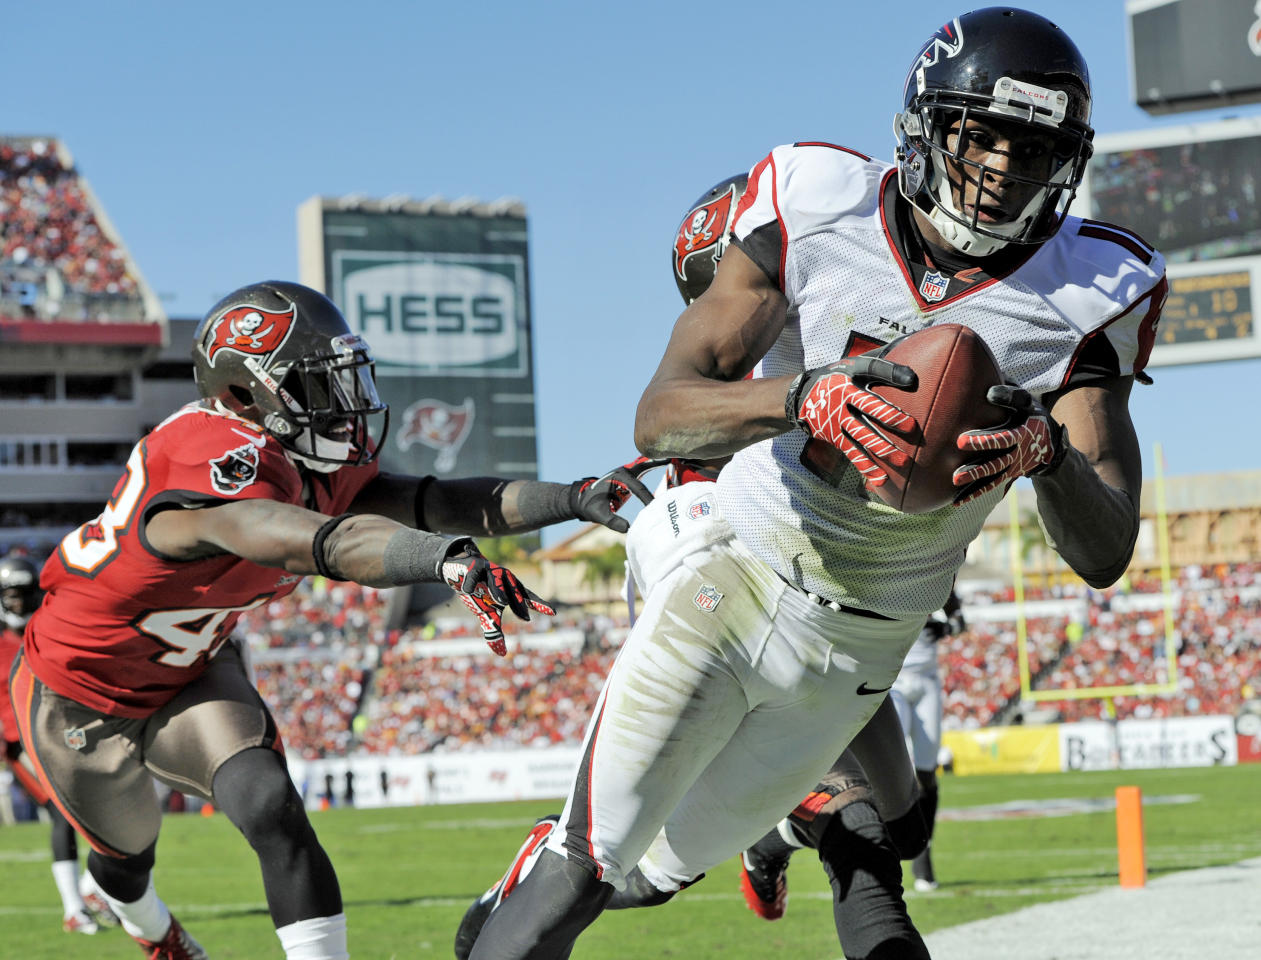 Atlanta Falcons wide receiver Julio Jones (11) is shoved out of bounds by Tampa Bay Buccaneers free safety Ahmad Black (43) during the second quarter of an NFL football game Sunday, Nov. 25, 2012, in Tampa, Fla. Jones was ruled out of bounds. (AP Photo/Brian Blanco)